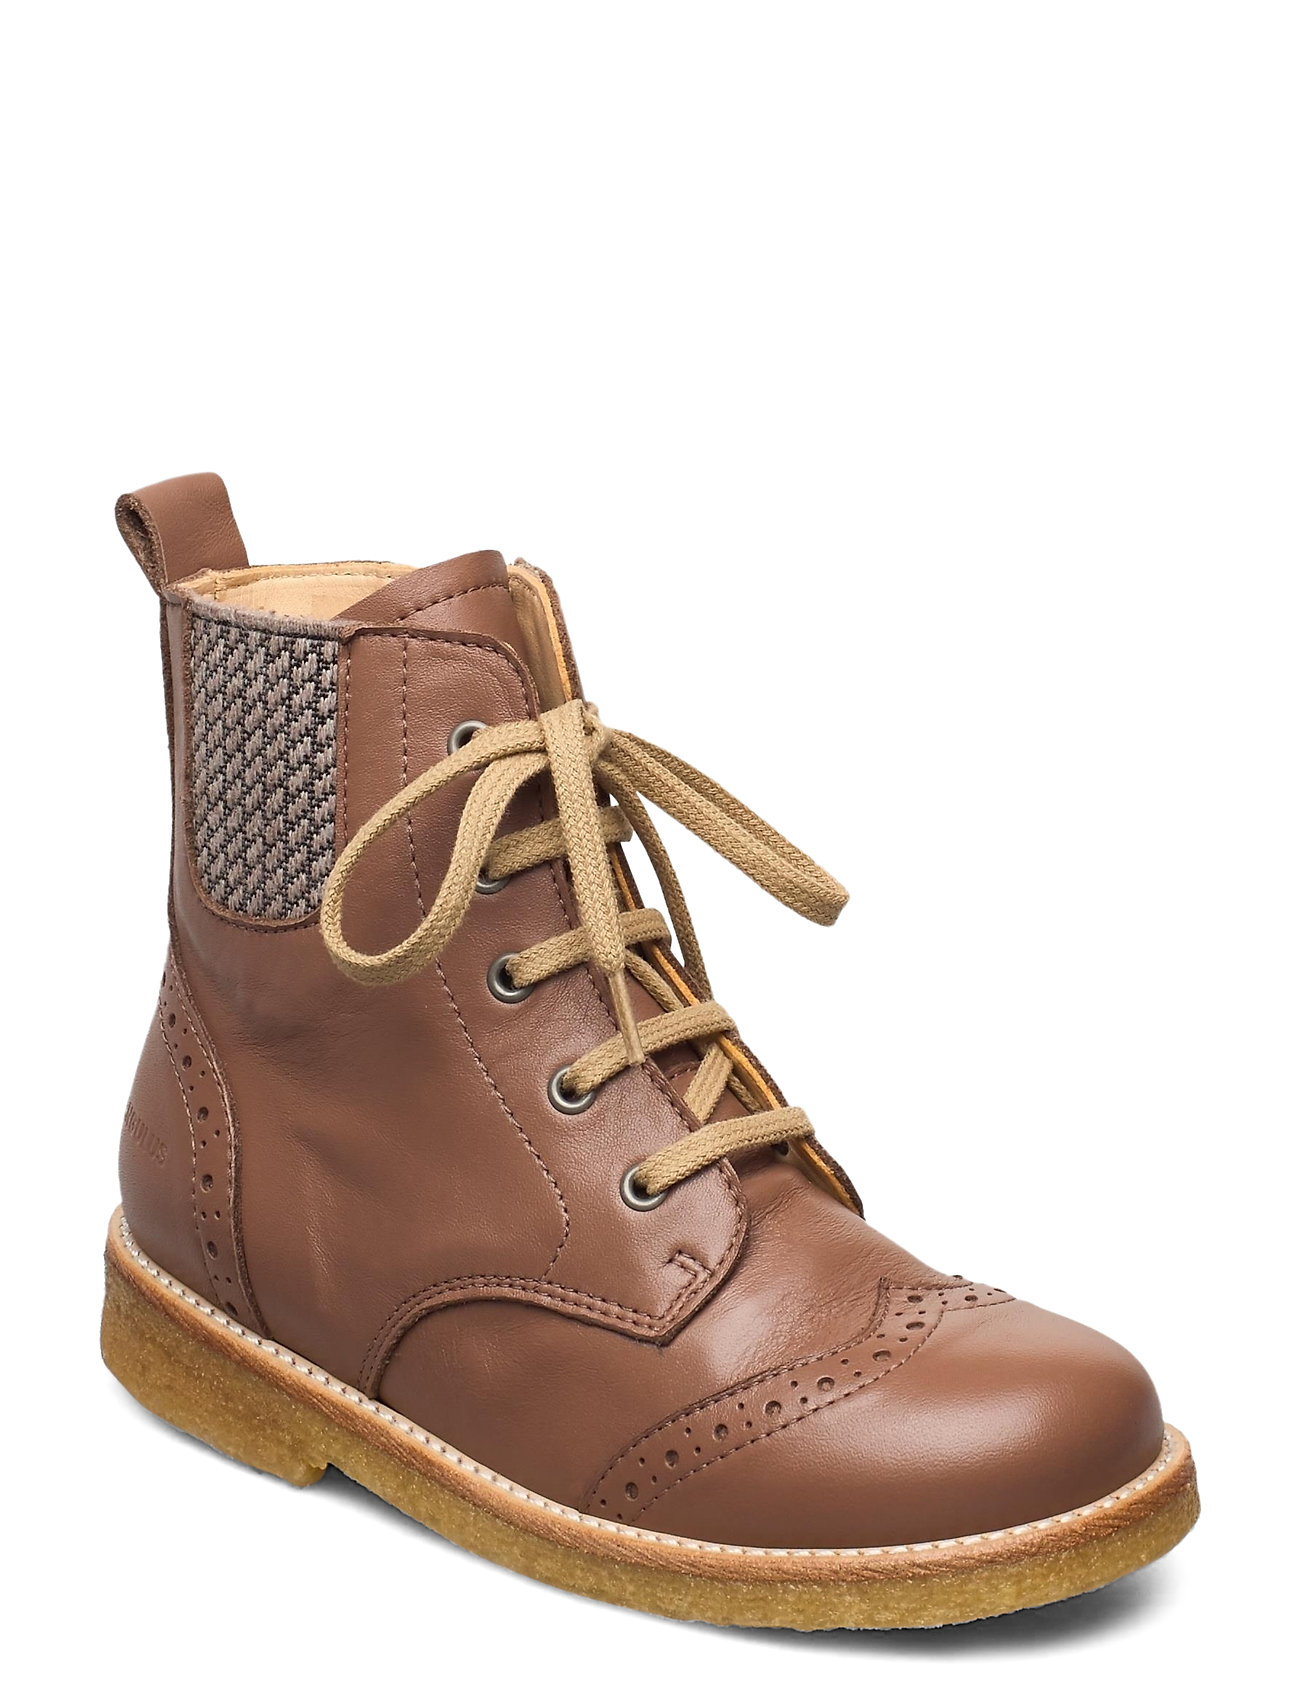 Boots - Flat - With Lace And Zip Boots Støvler Brun ANGULUS